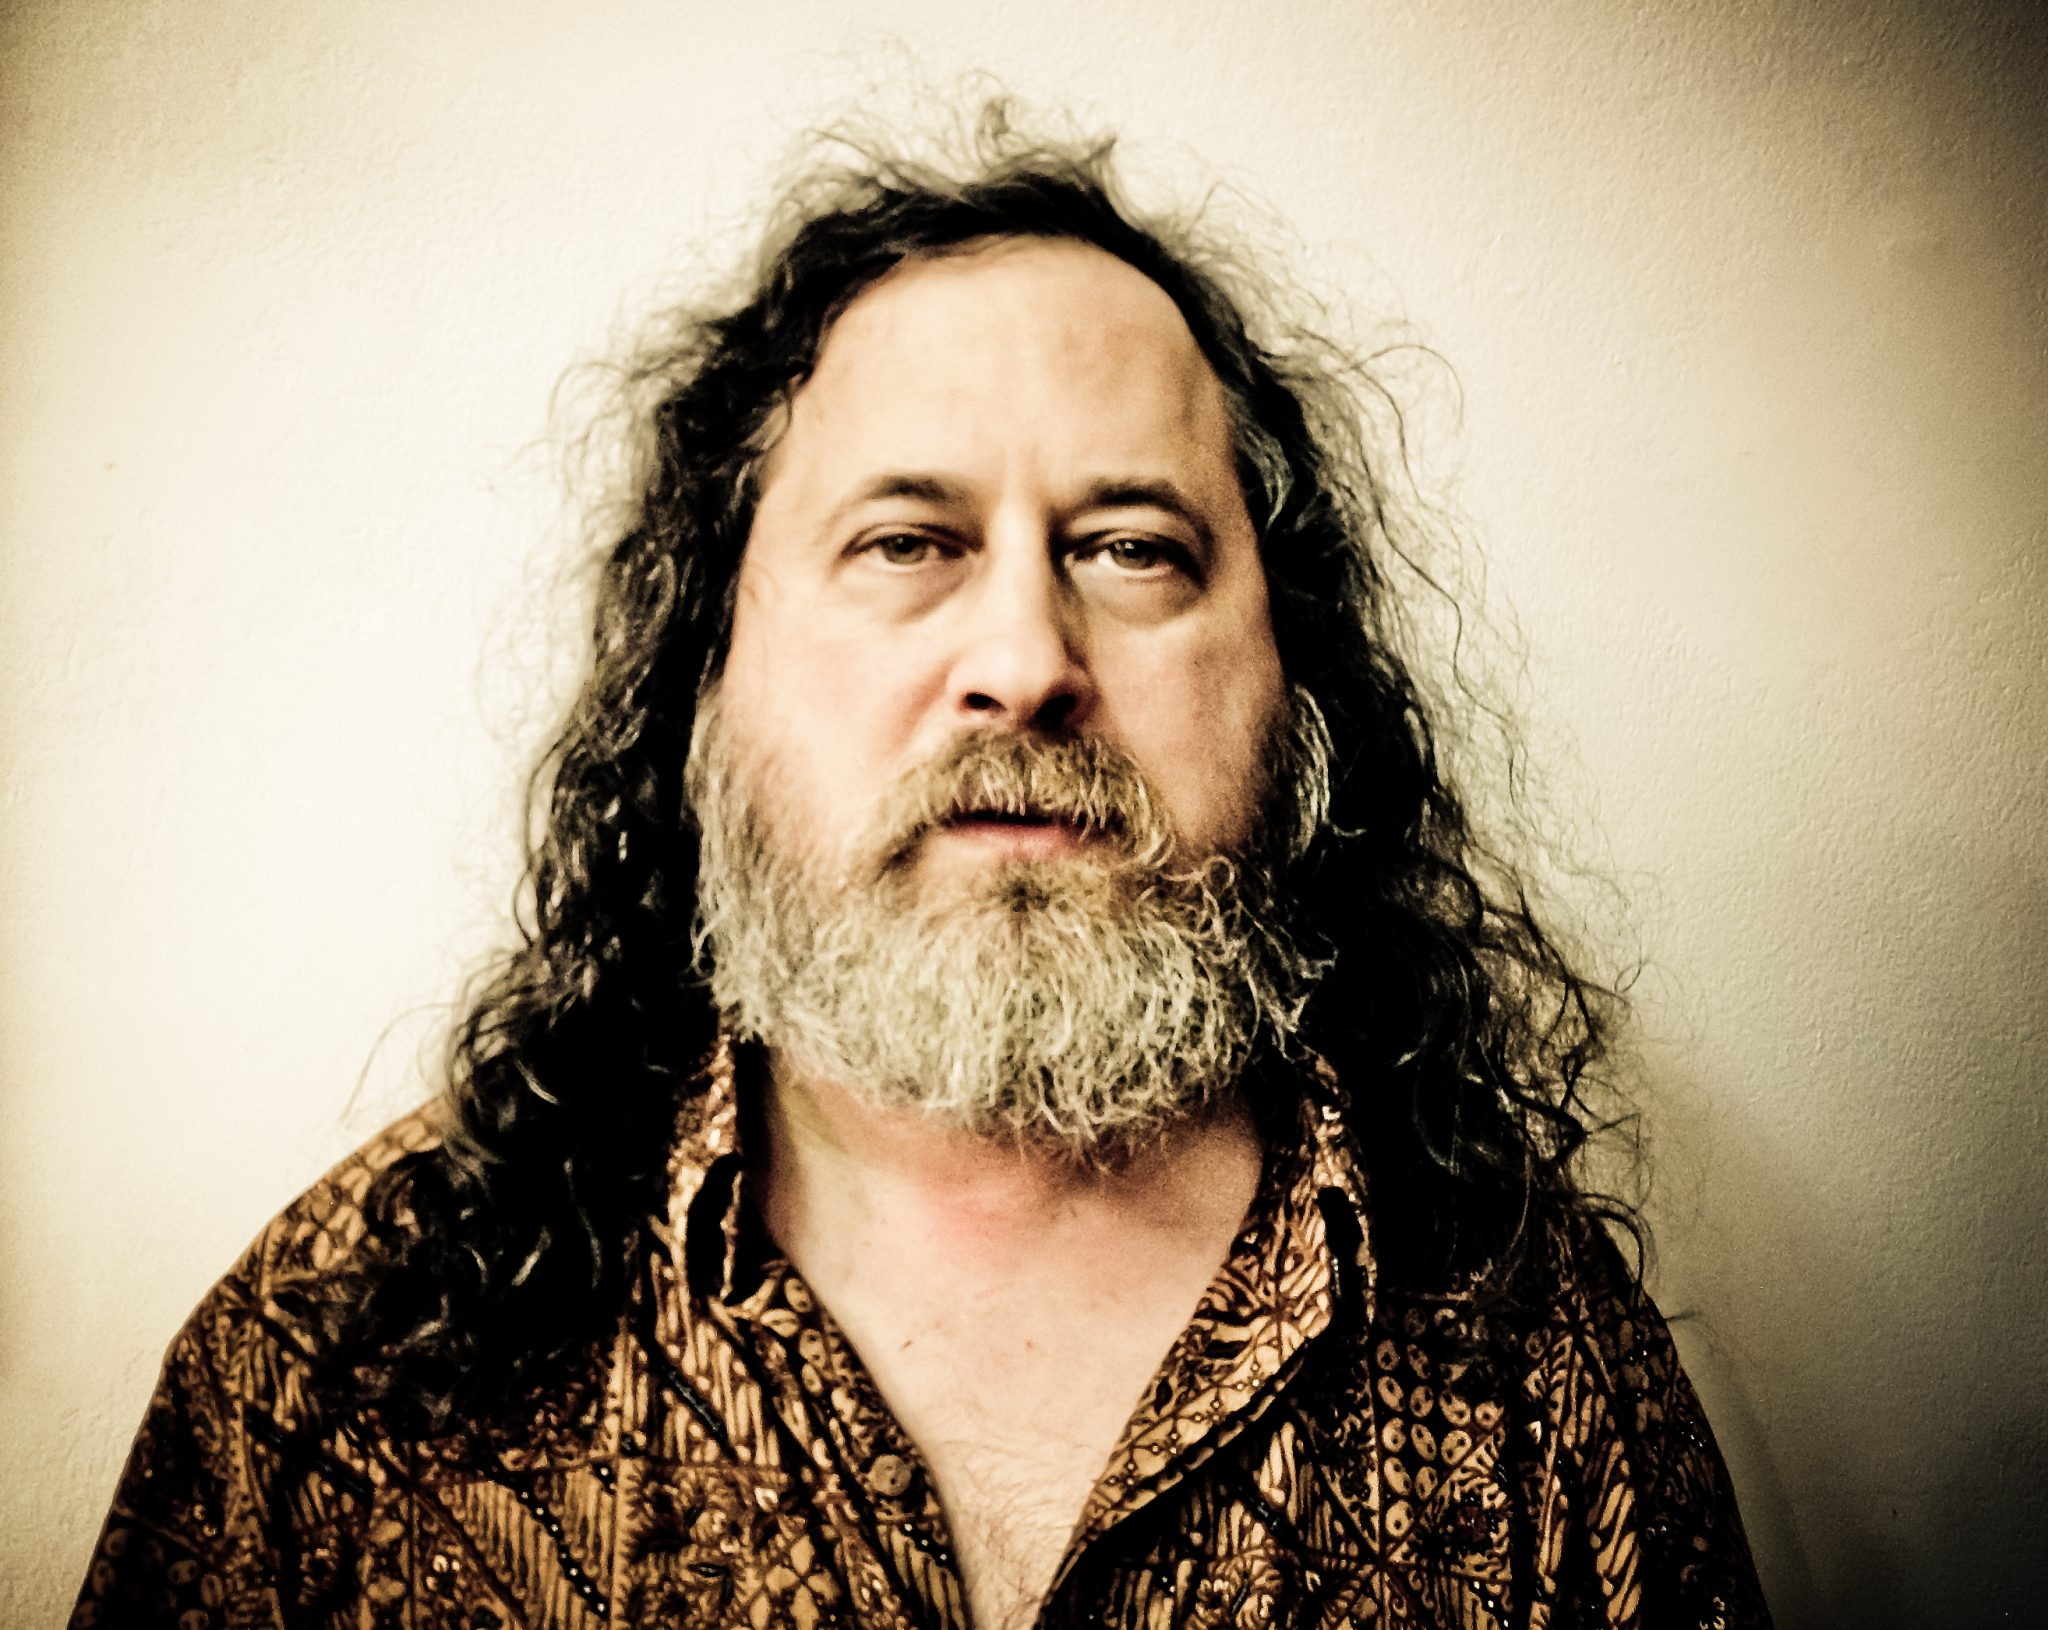 Facebook is not your friend, it is a surveillance engine. Richard Stallman